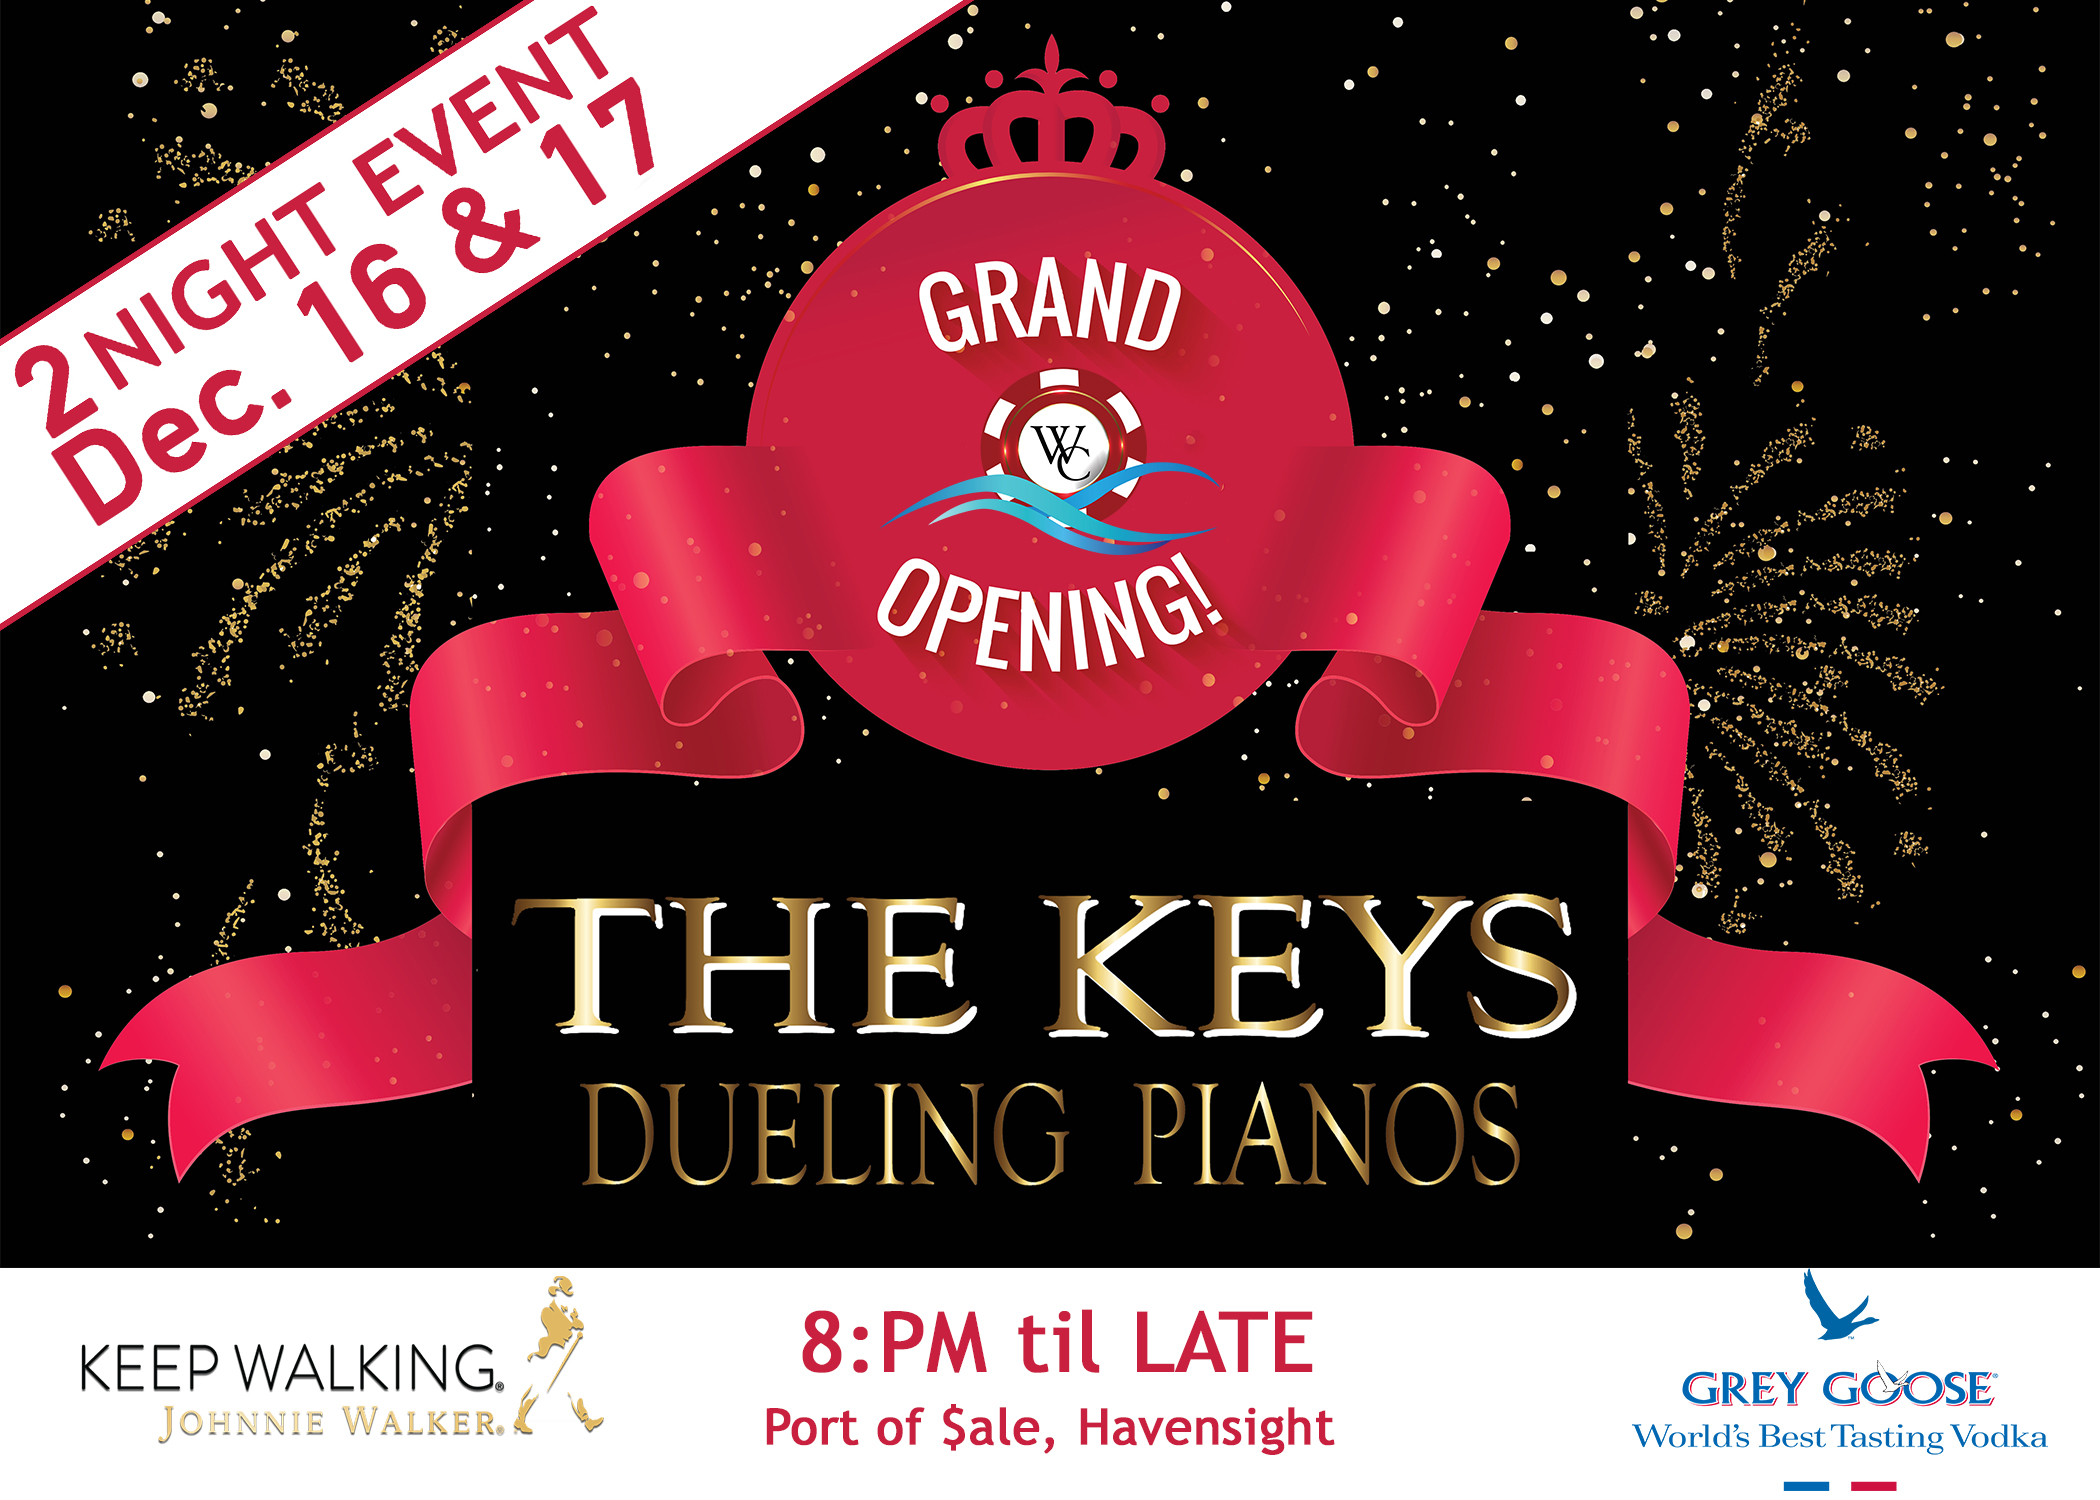 Grand Opening- The Keys Dueling Pianos